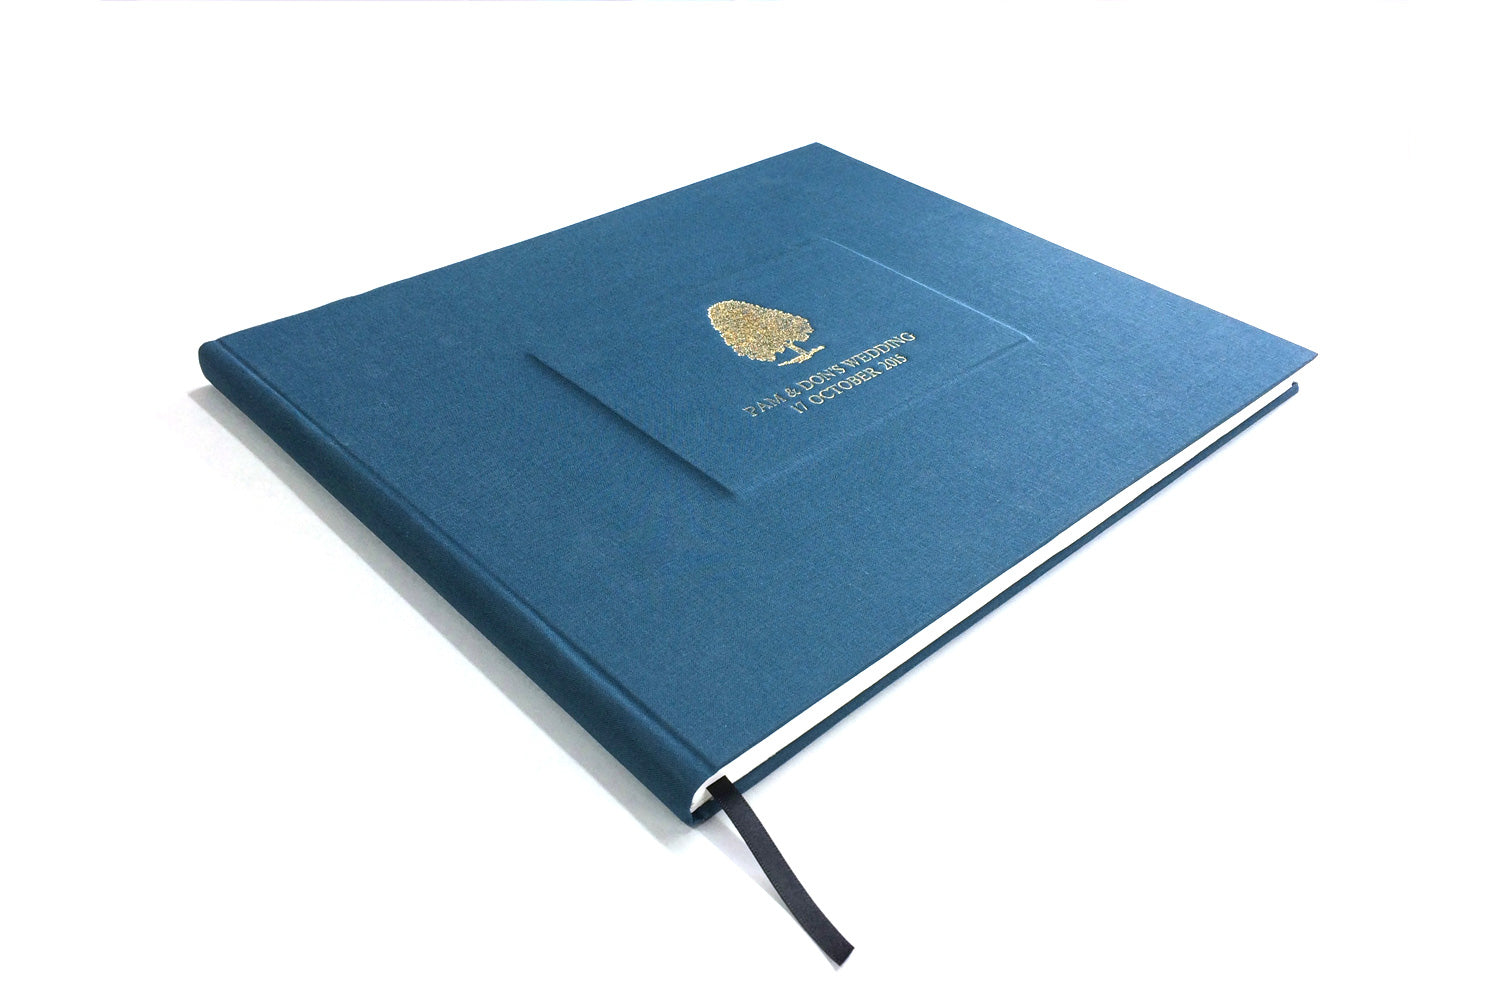 personalised wedding guest book from Bookshell bindery, hand bound in blue book cloth with gold foil embossing, tree cover picture